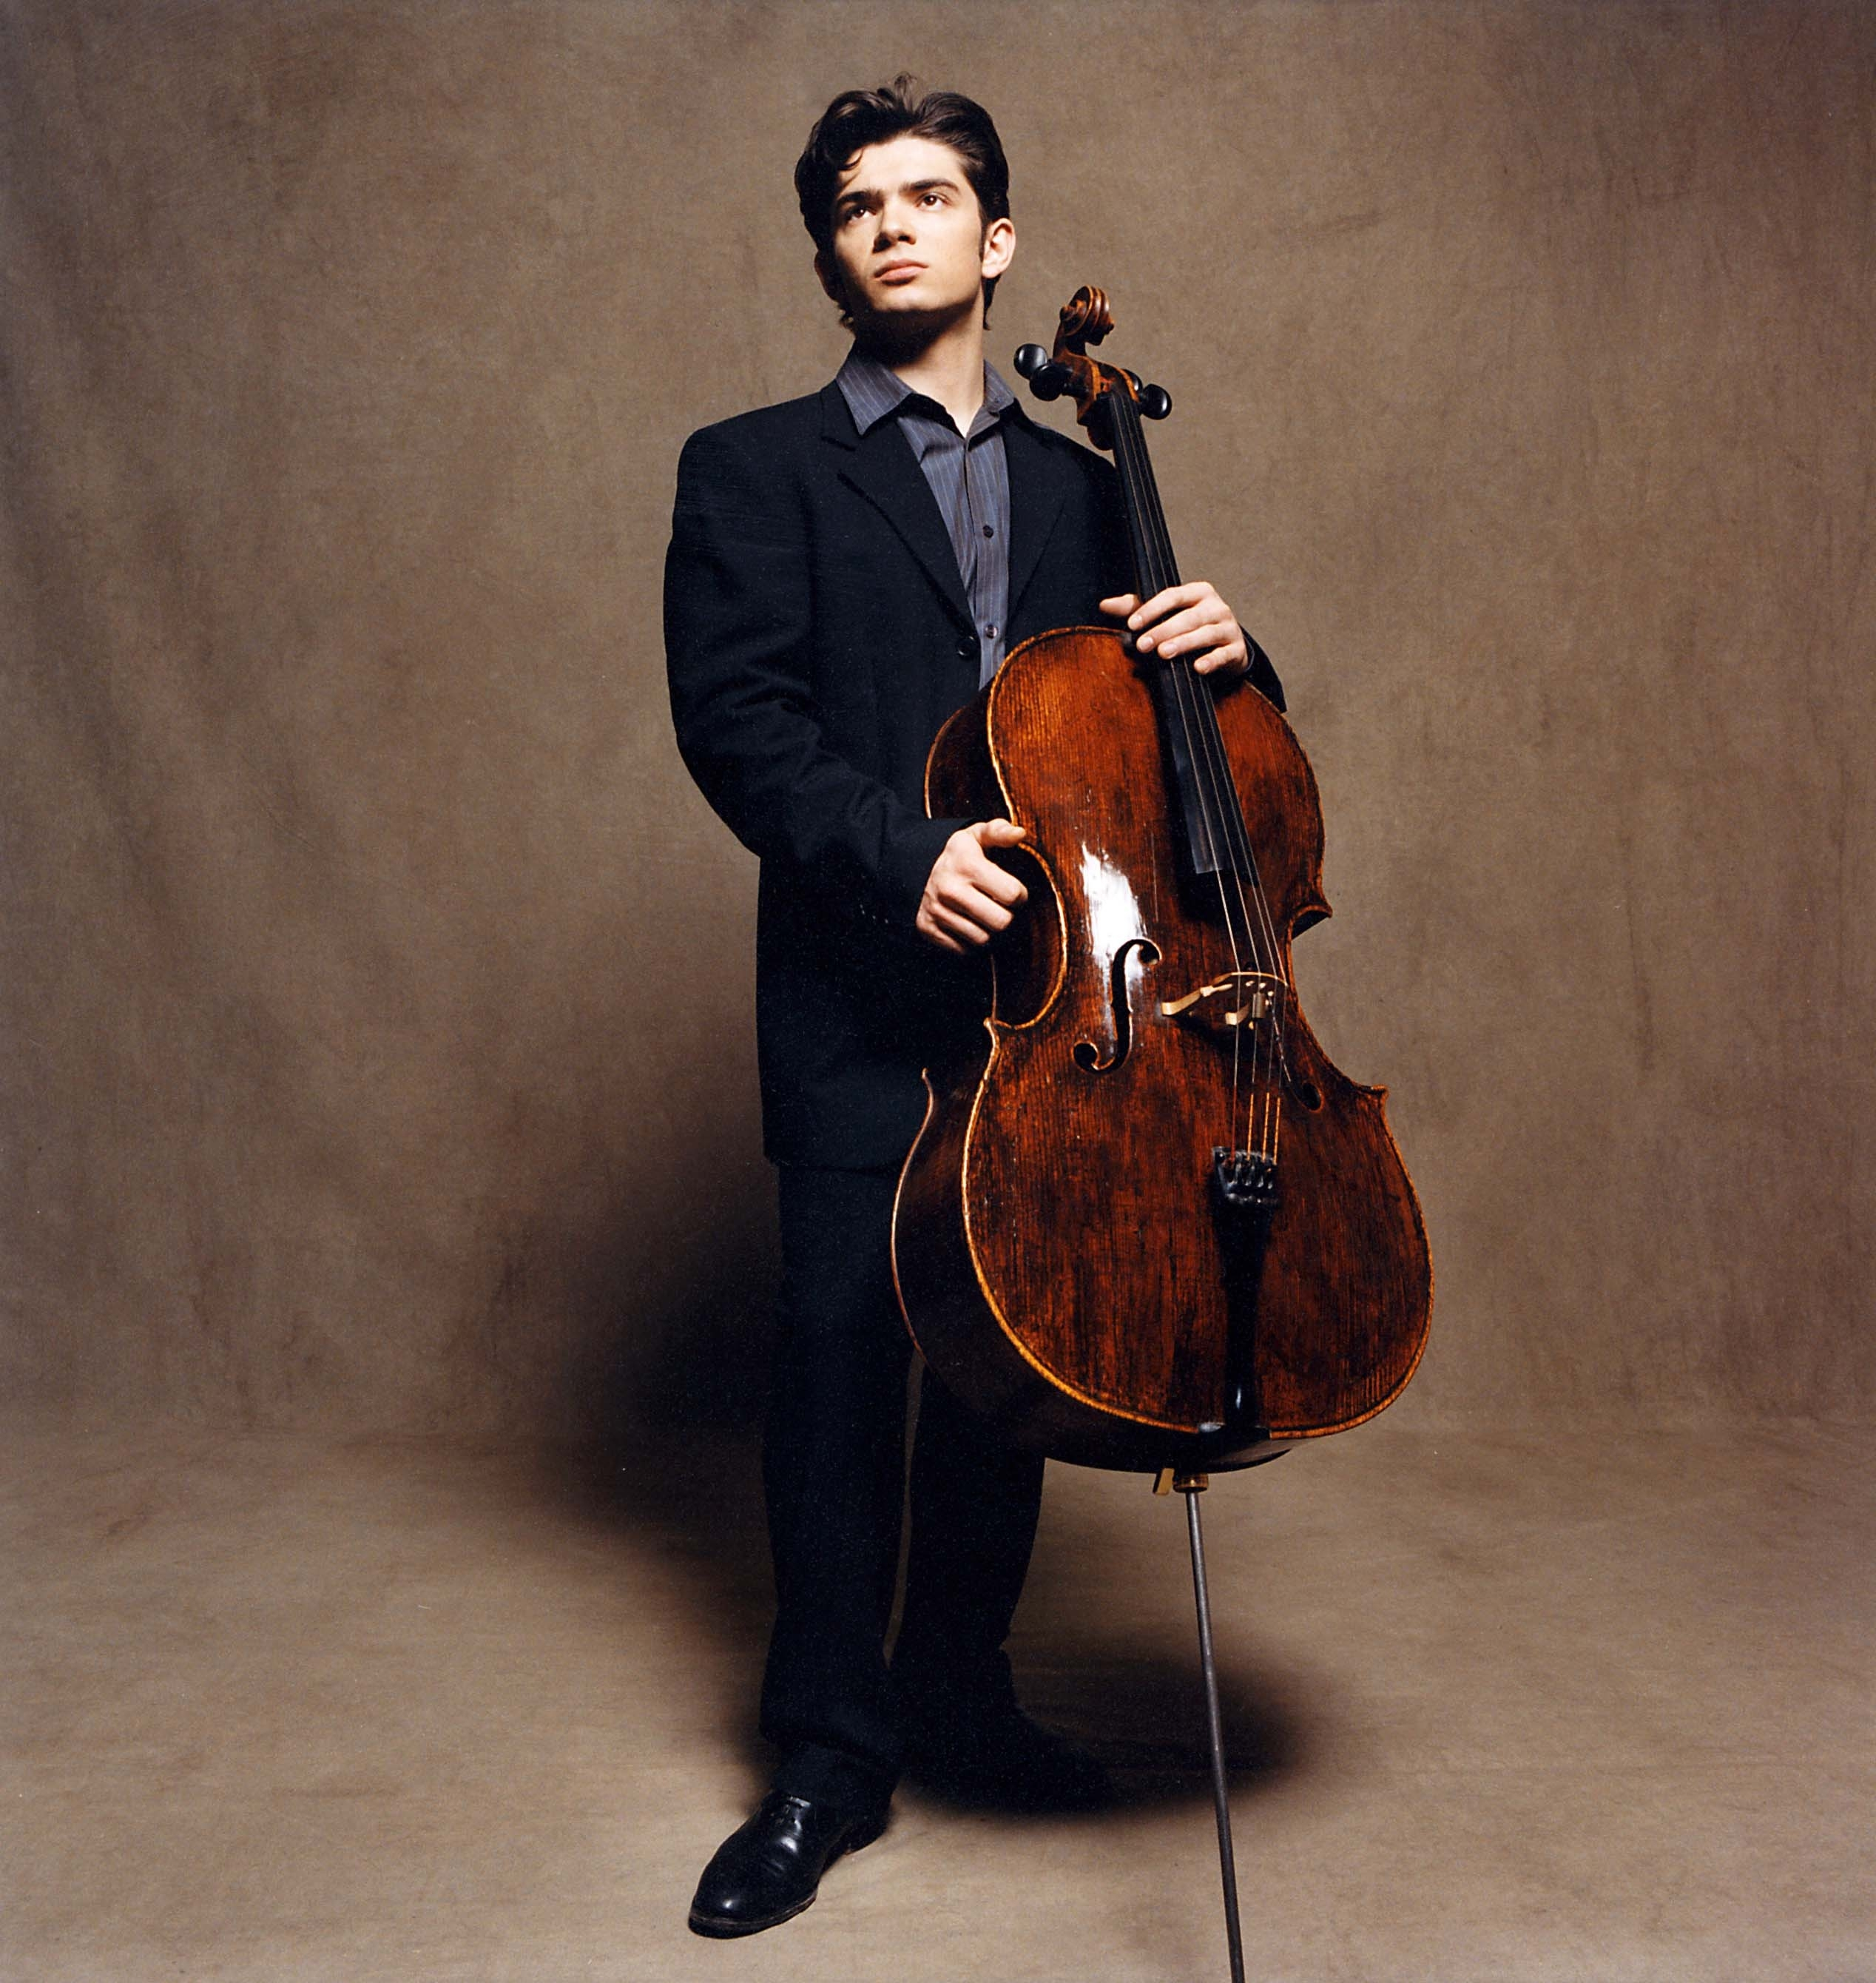 Masterclass de cello ��� Gautier Capu��on | consev.